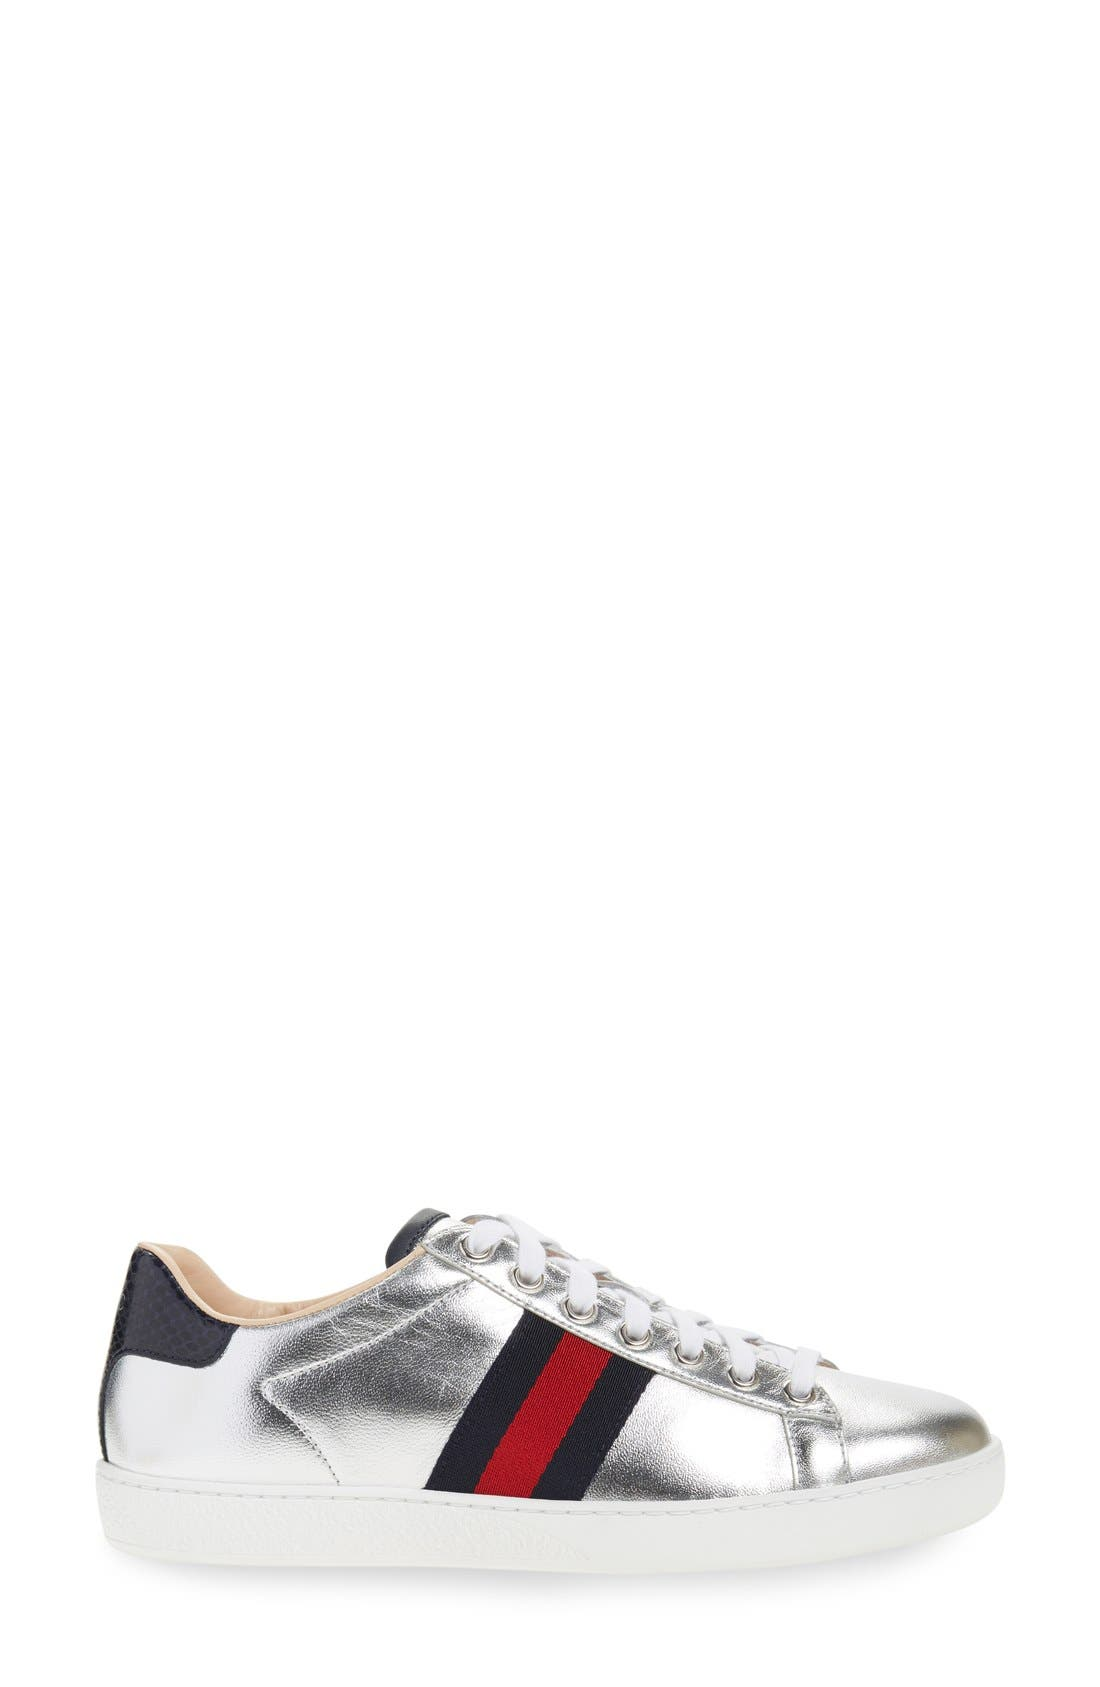 GUCCI,                             'New Ace' Metallic Low Top Sneaker,                             Alternate thumbnail 3, color,                             040